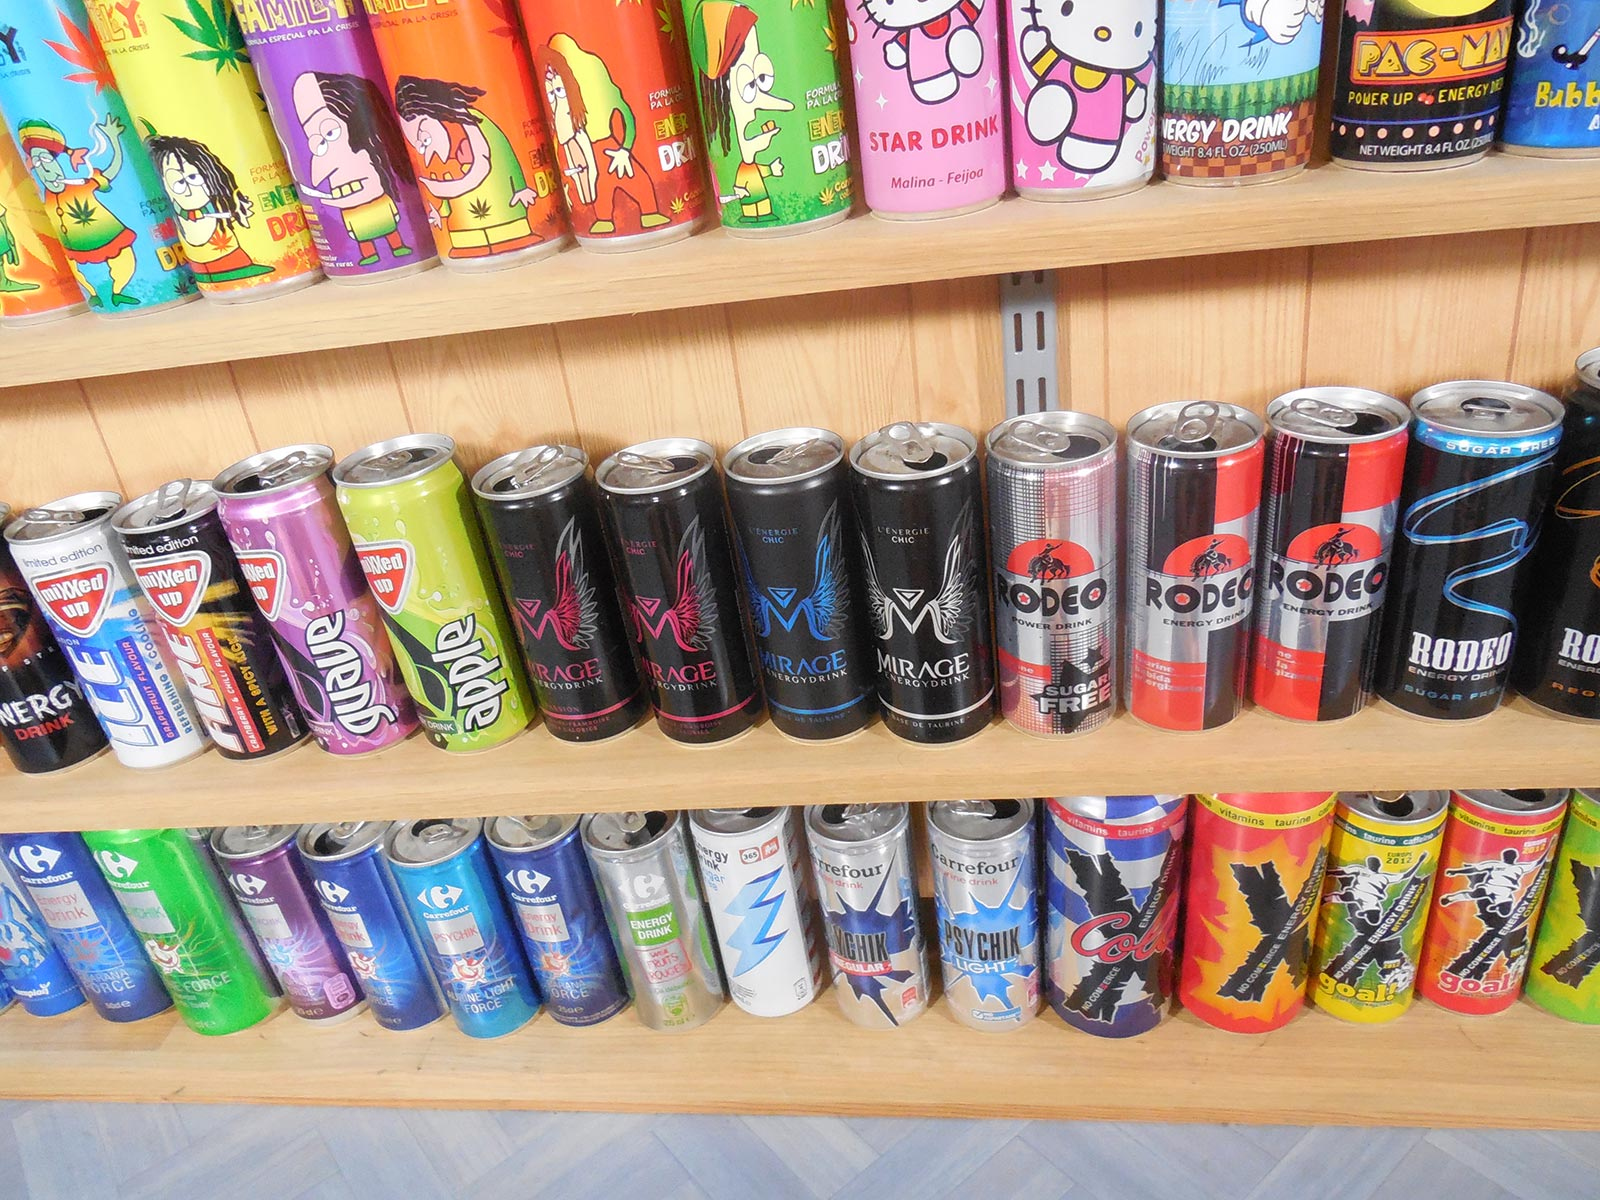 Collection Mirage Energy drink